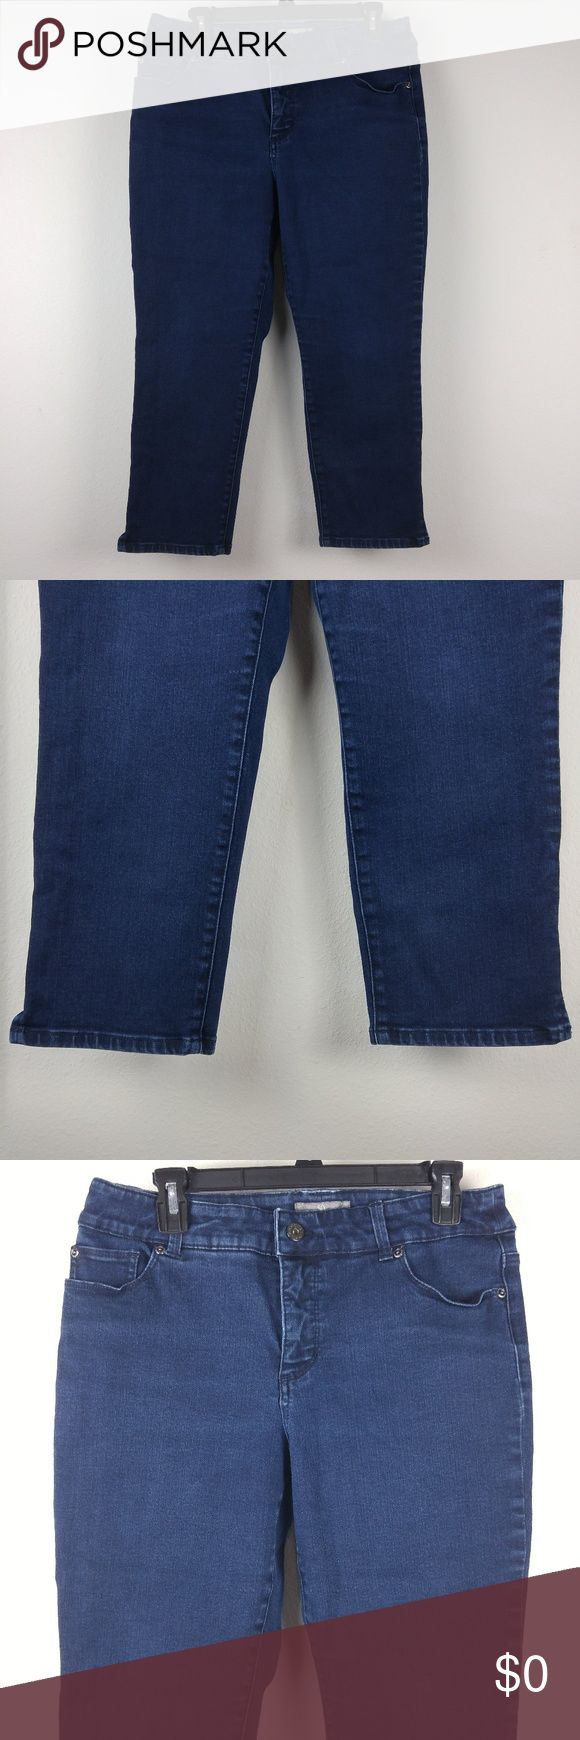 Chico's Jeans Slim Fit Dark Wash Straight 1.5/M/10 Brand: Chico's Buyer: Women Item: Jeans Material: Denim, Stretch Fit: Slim Fit Details: Dark wash, Straight leg Size: 1.5/M/10 Color: Blue Condition: Excellent pre-owned condition, no flaws   Measurements: Waist Across Laying Flat: 16 inches Rise: 10 inches Inseam: 23  inches  Location: Y-6 Weight: Flat Chico's Jeans Straight Leg